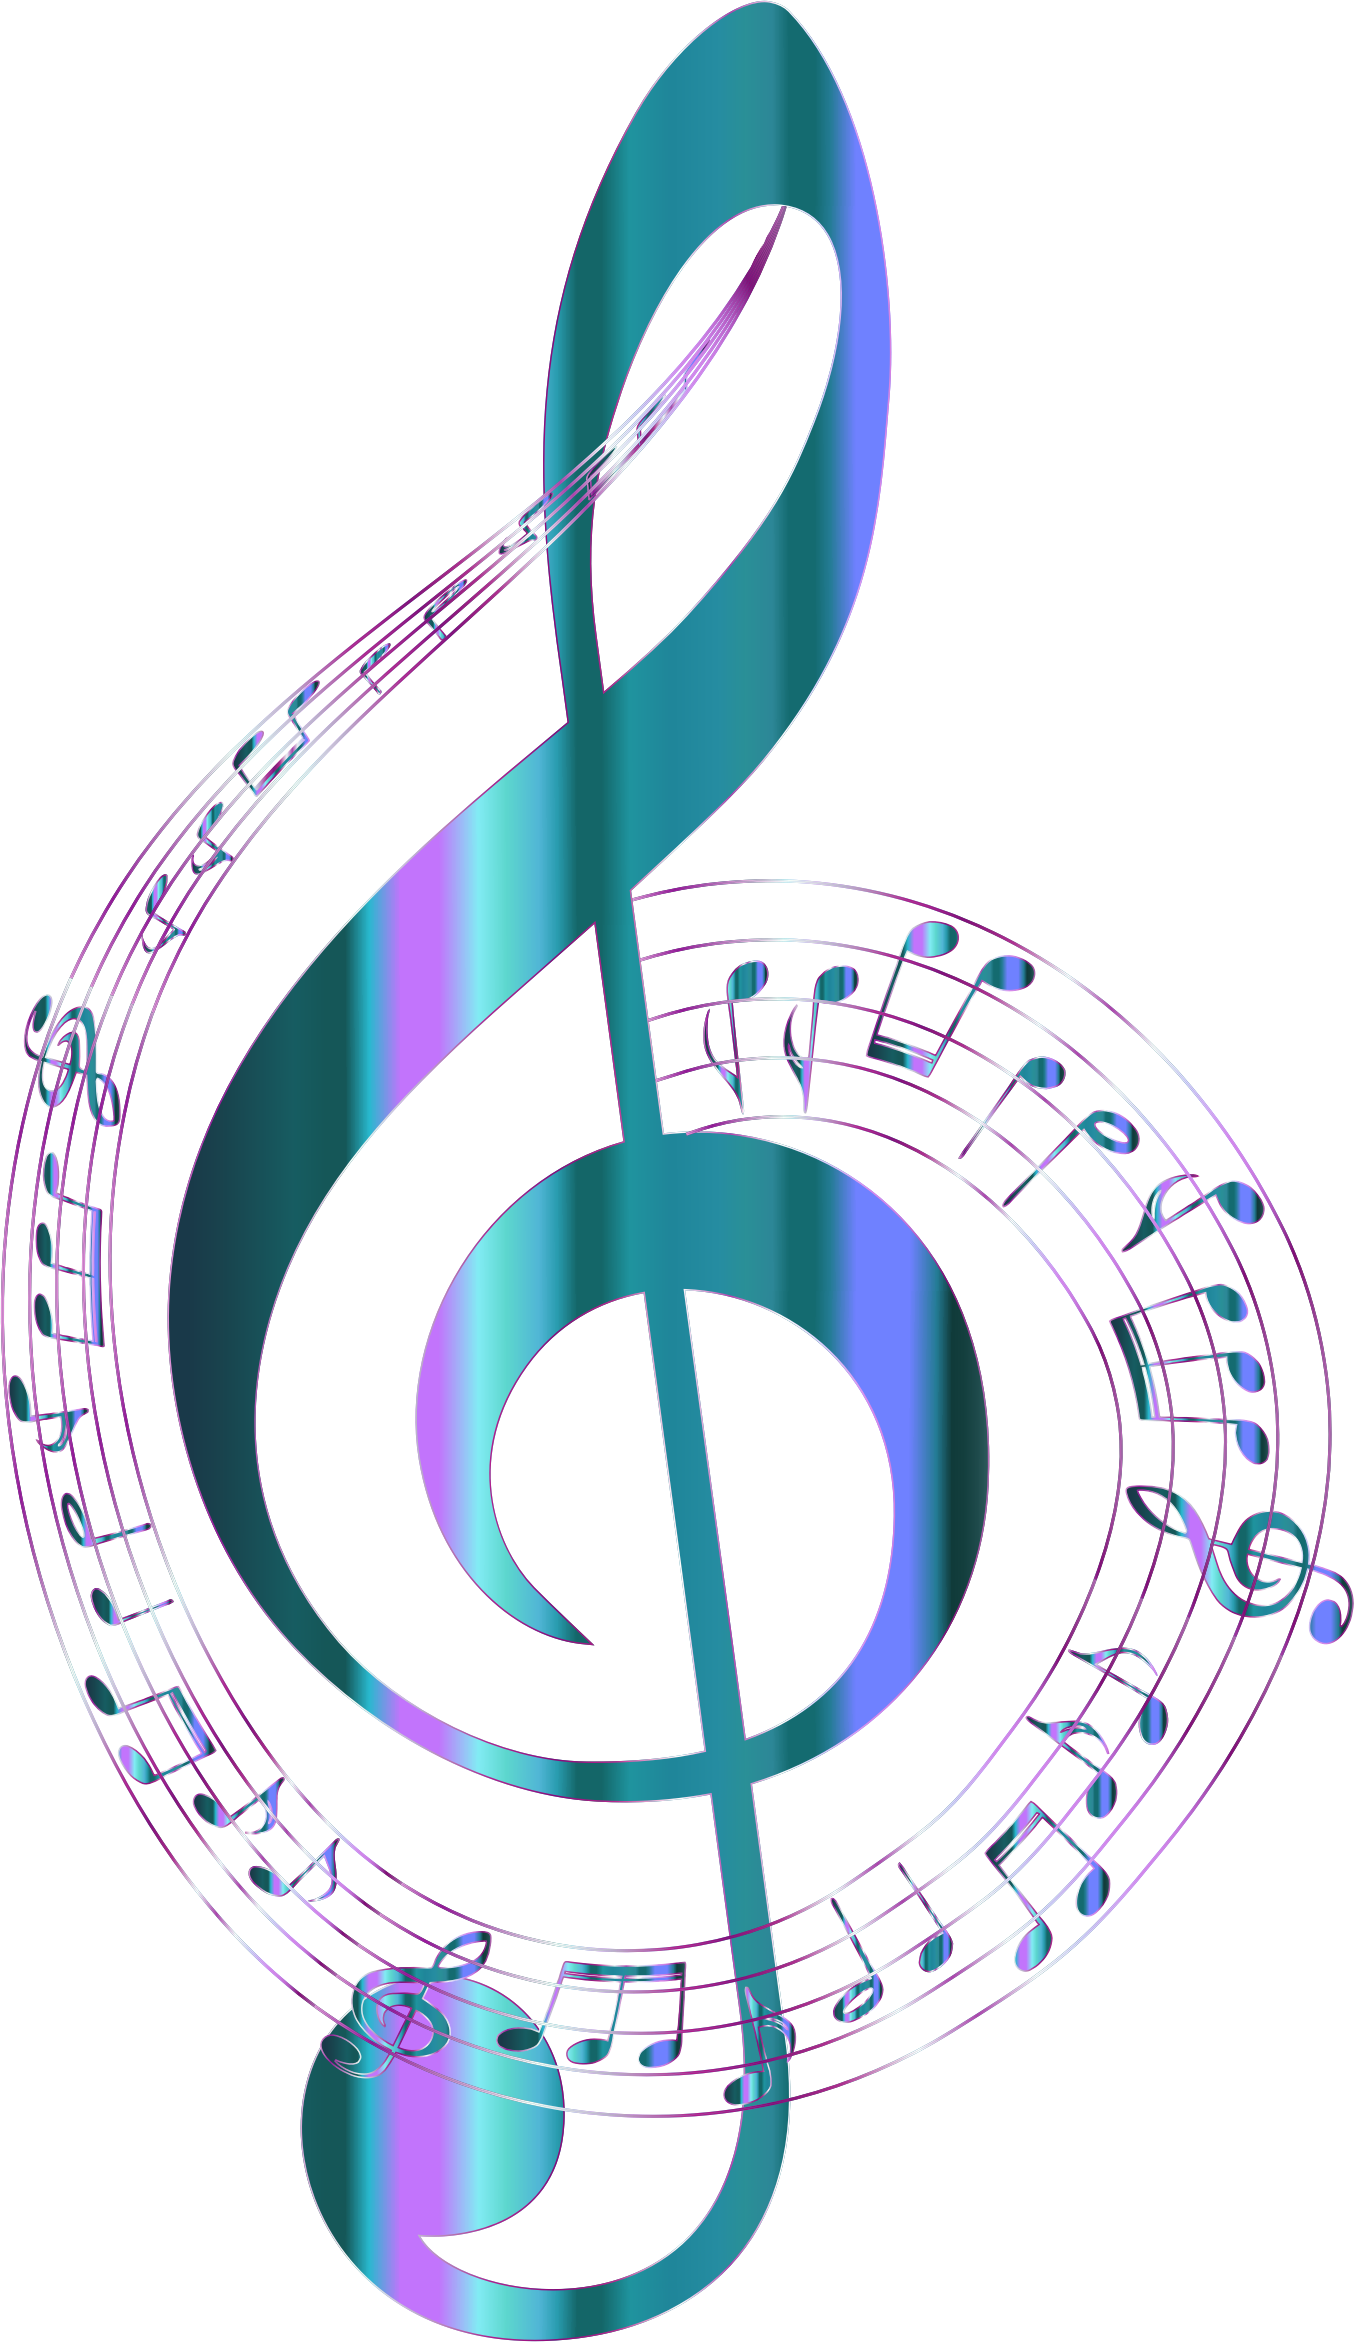 Turquoise Musical Notes Typography No Background By Gdj Turquoise Musical Notes Typography No Background Music Notes Art Music Notes Background Music Notes